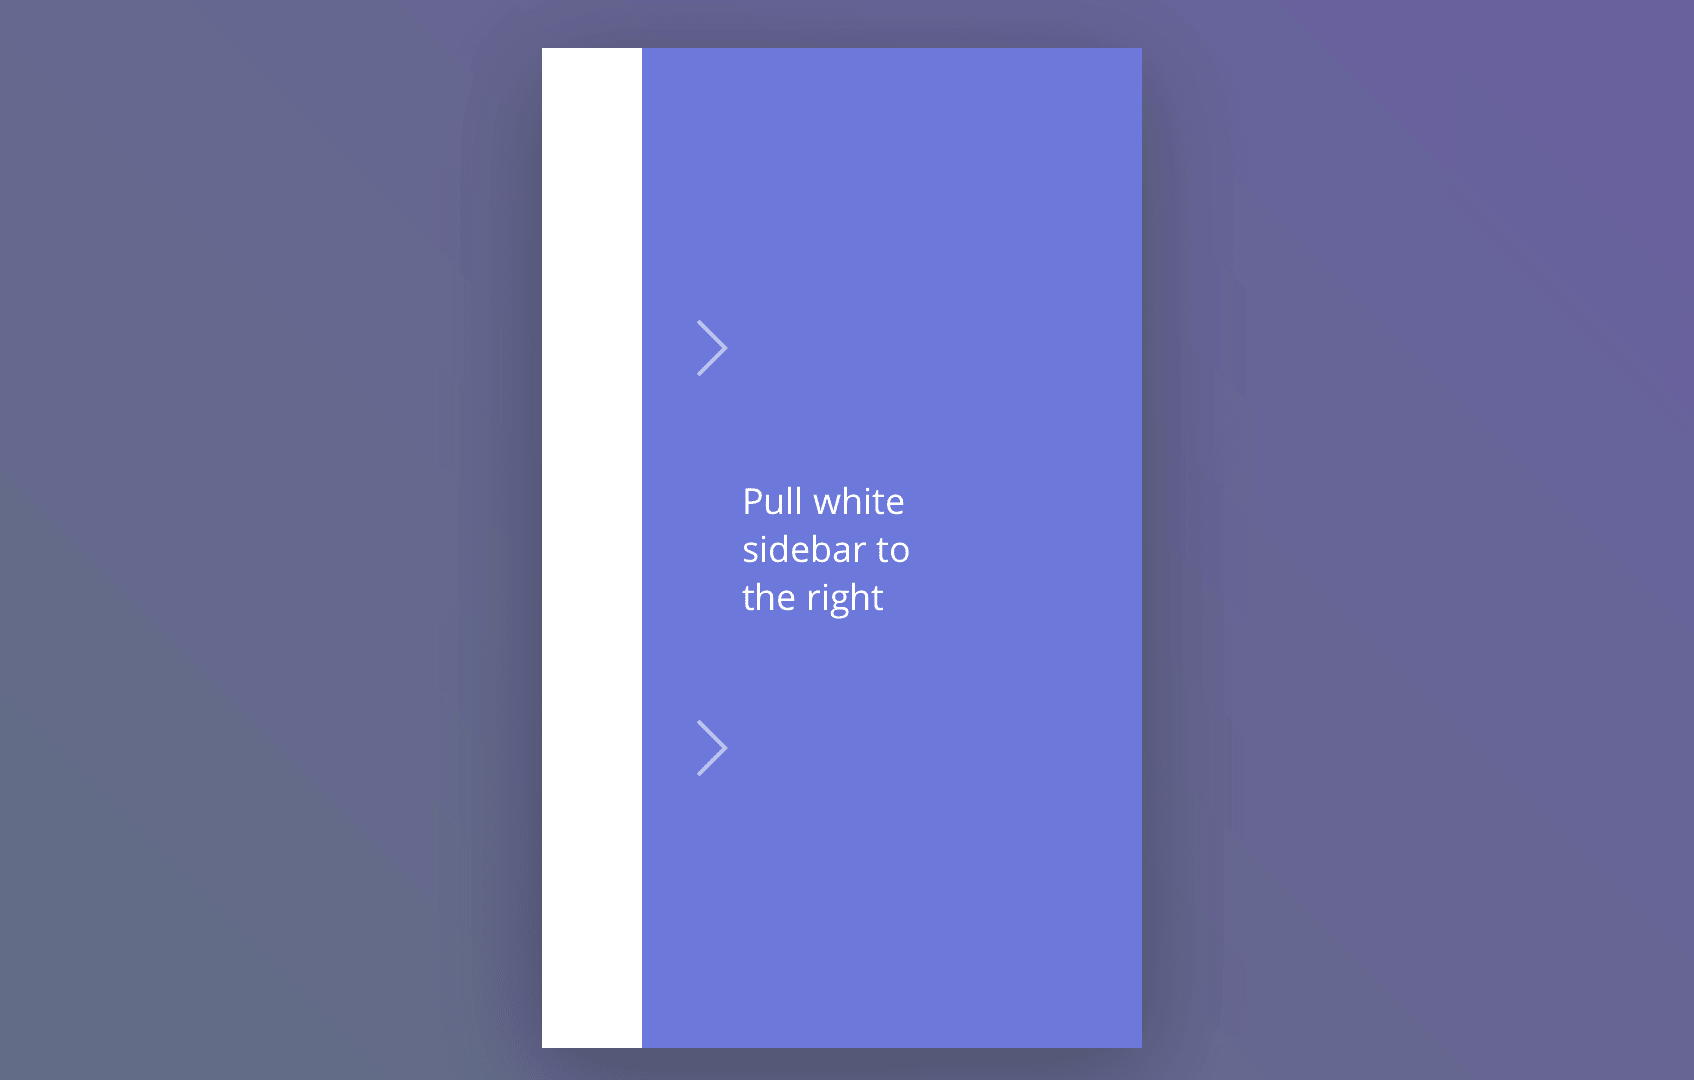 Bouncy Material Design navigation drawer in CSS